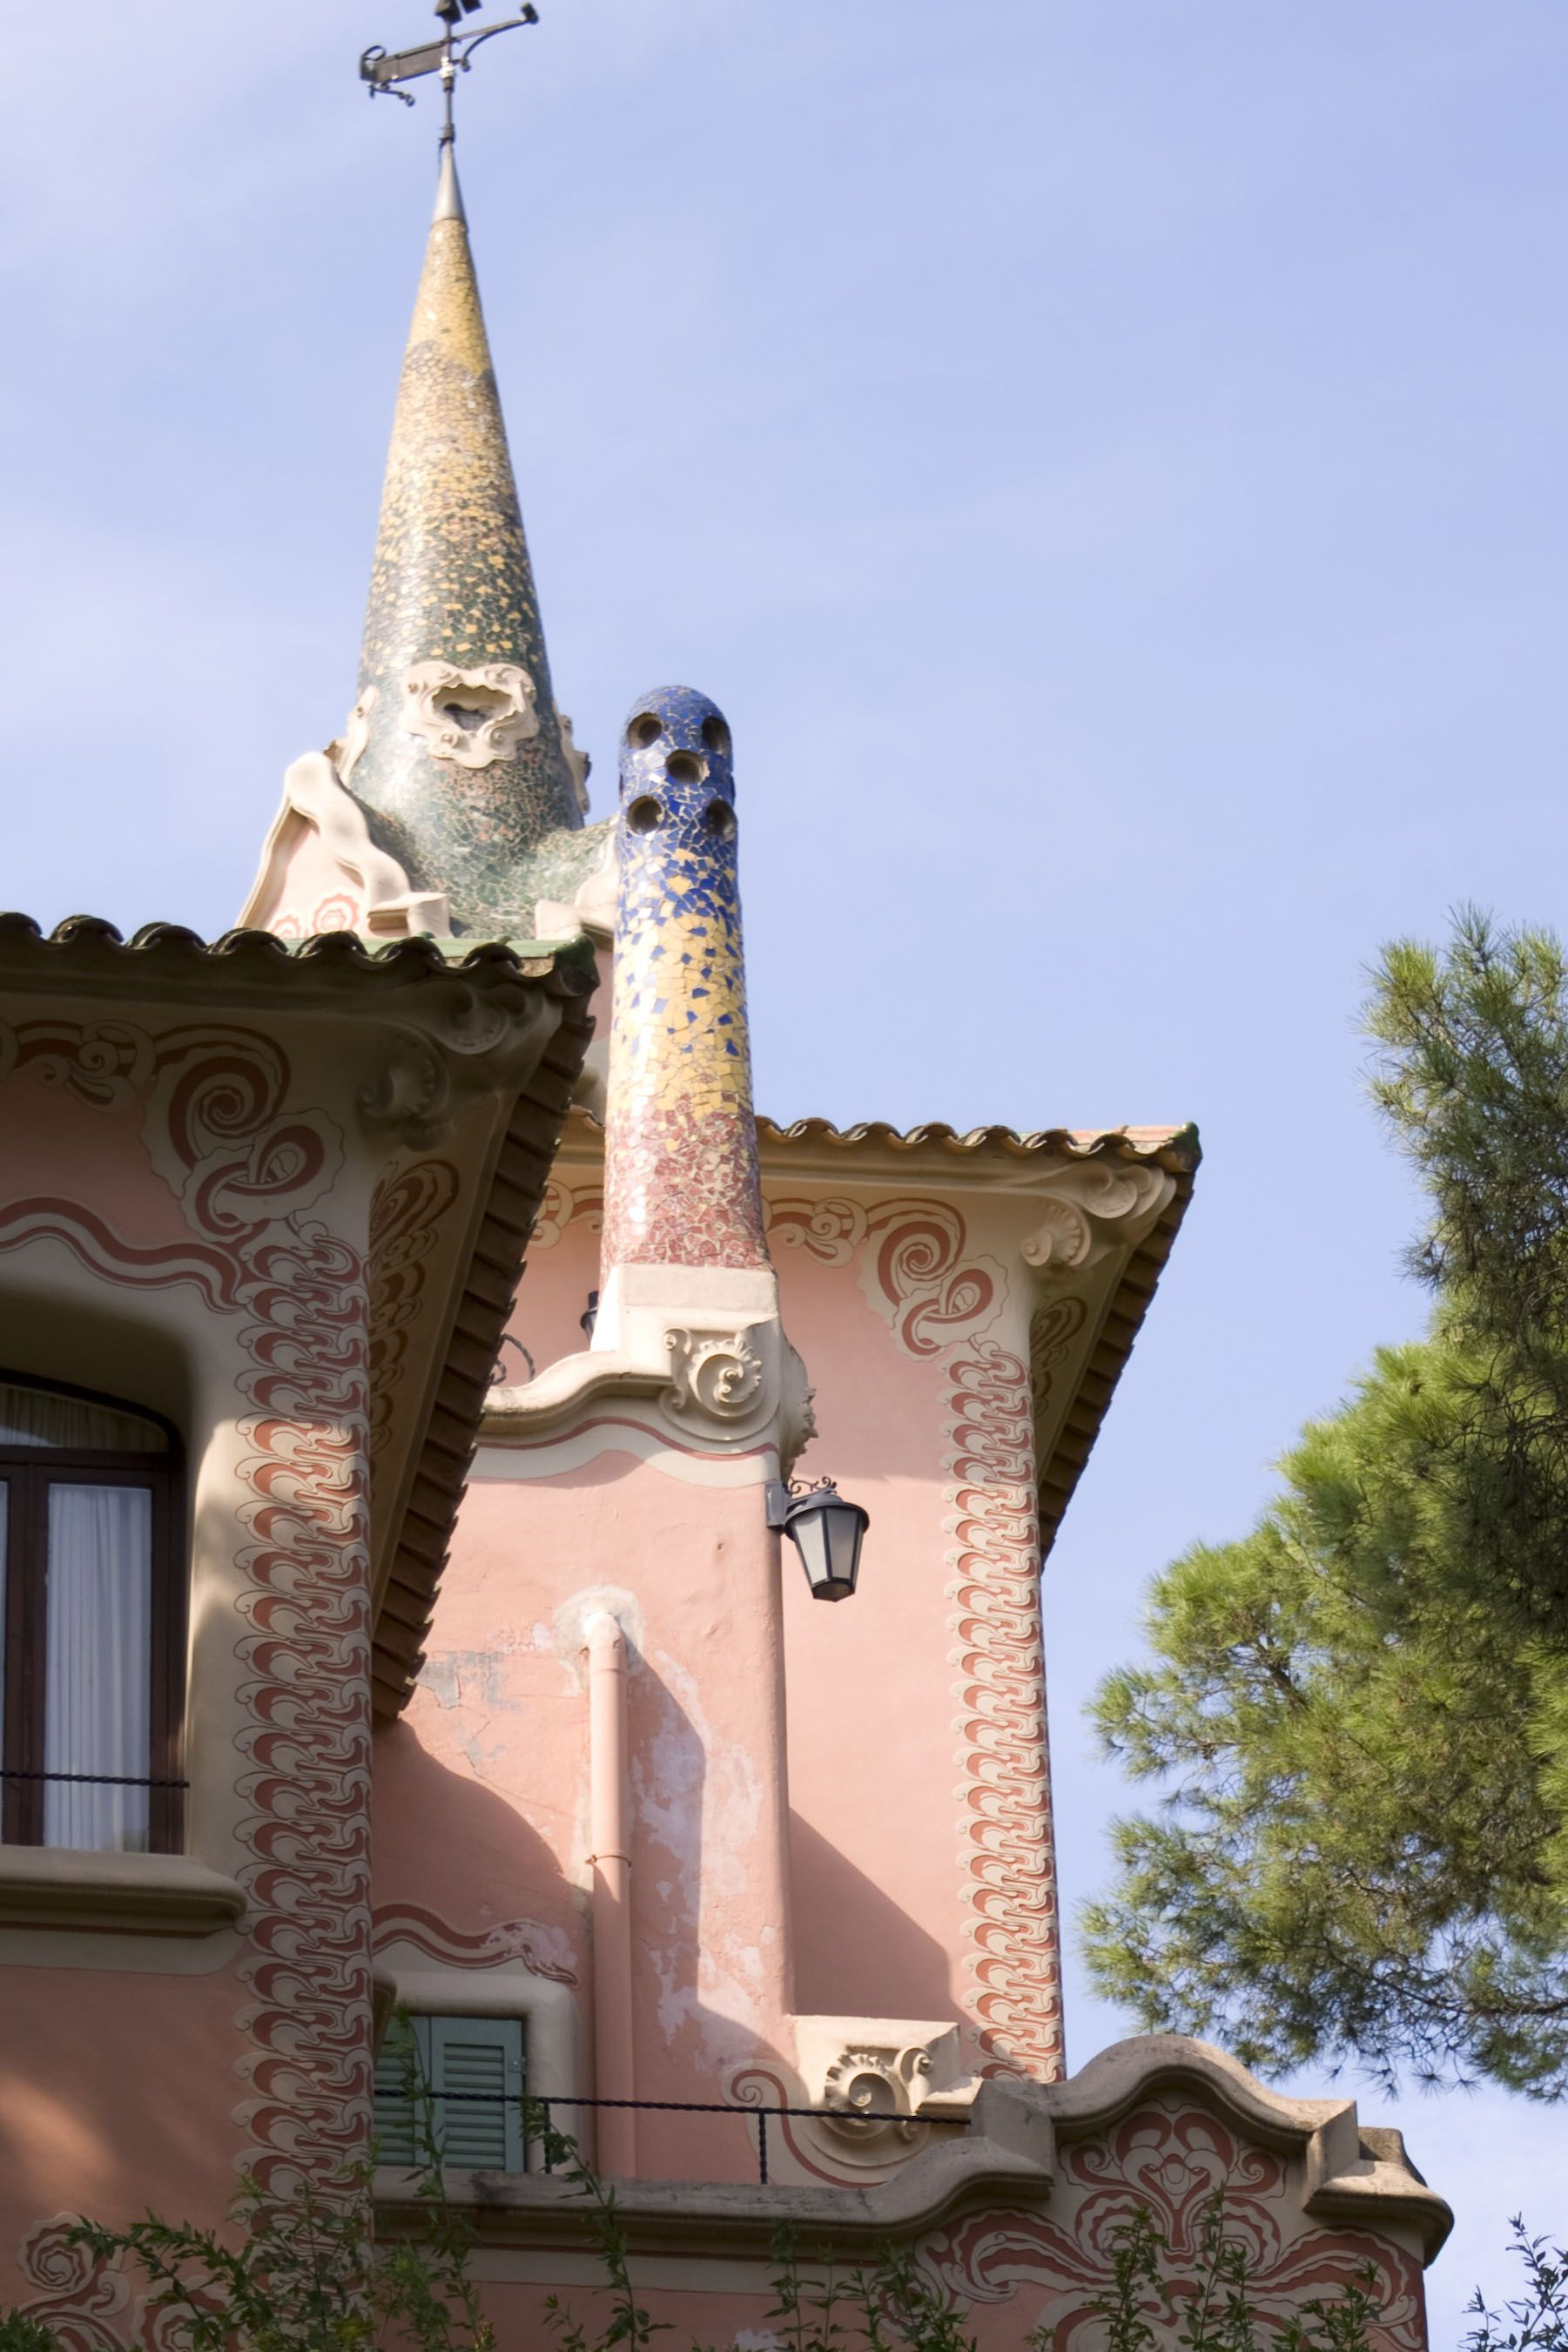 Spain - Barcelona - Parc Guell - Gaudi park - By: Lisette Eppink